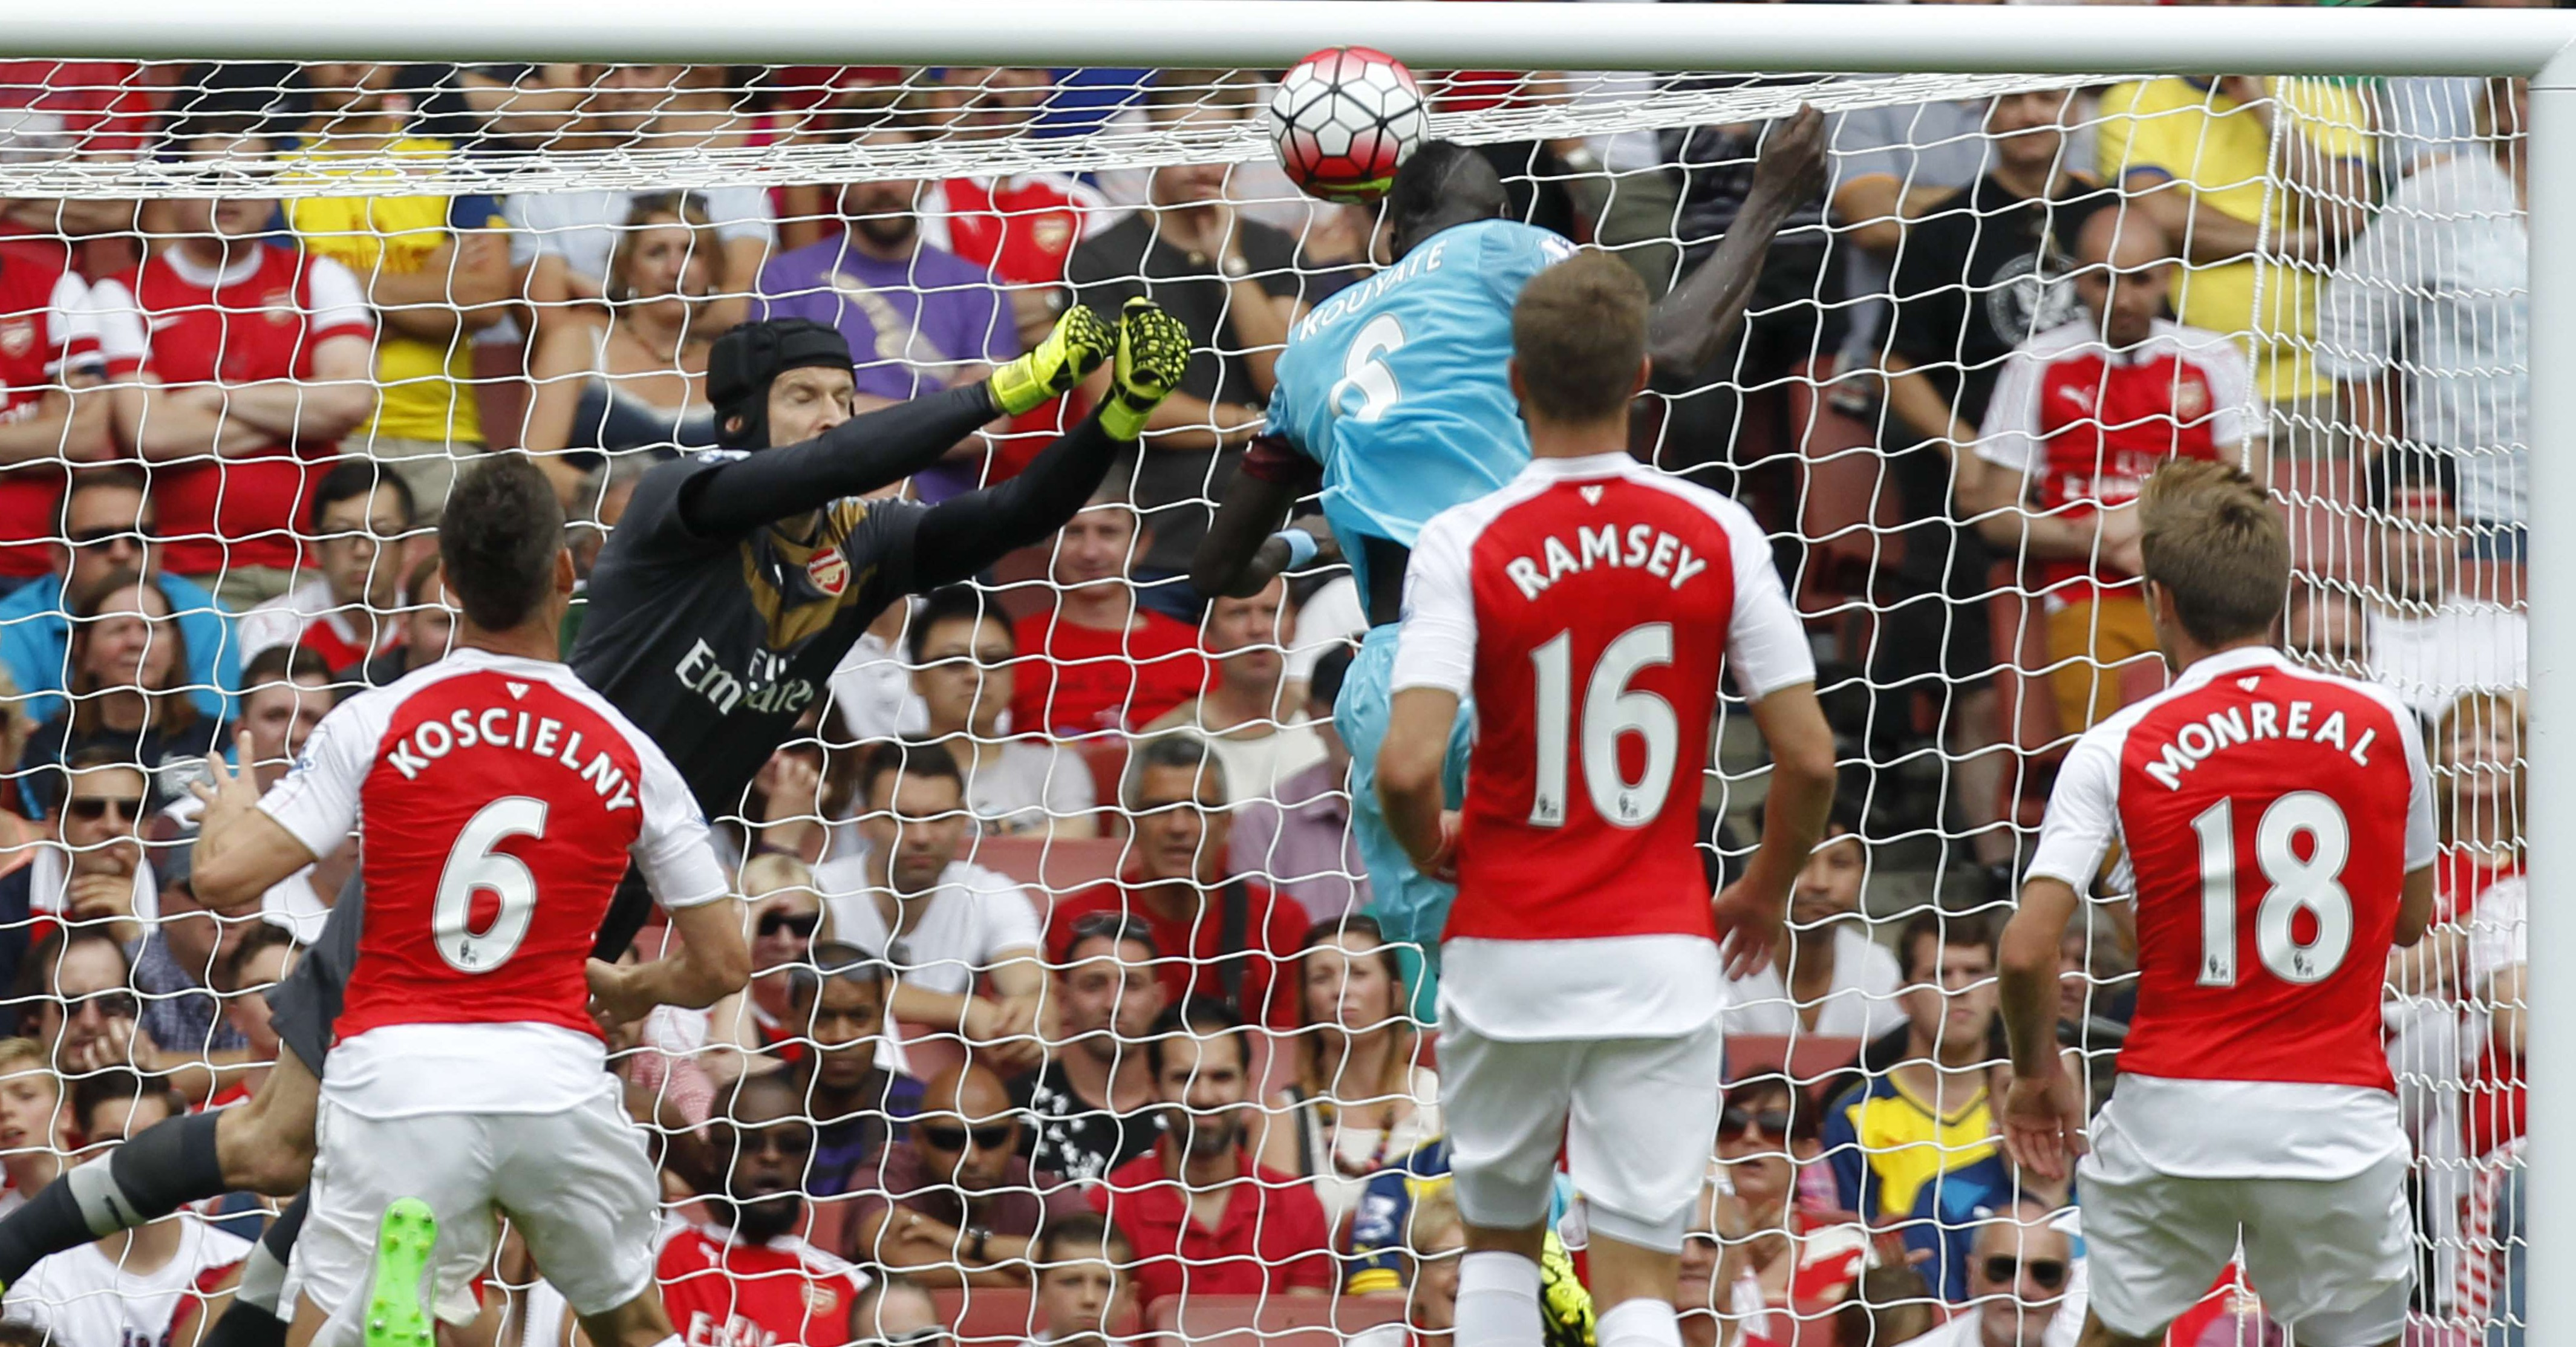 """West Ham United's Senegalese midfielder Cheikhou Kouyate (3rd R) heads past Arsenal's Czech goalkeeper Petr Cech for the opening goal of the English Premier League football match between Arsenal and West Ham United at the Emirates Stadium in London on August 9, 2015. AFP PHOTO / IKIMAGES RESTRICTED TO EDITORIAL USE. No use with unauthorised audio, video, data, fixture lists, club/league logos or """"live"""" services. Online in-match use limited to 45 images, no video emulation. No use in betting, games or single club/league/player publications.IKIMAGES/AFP/Getty Images"""